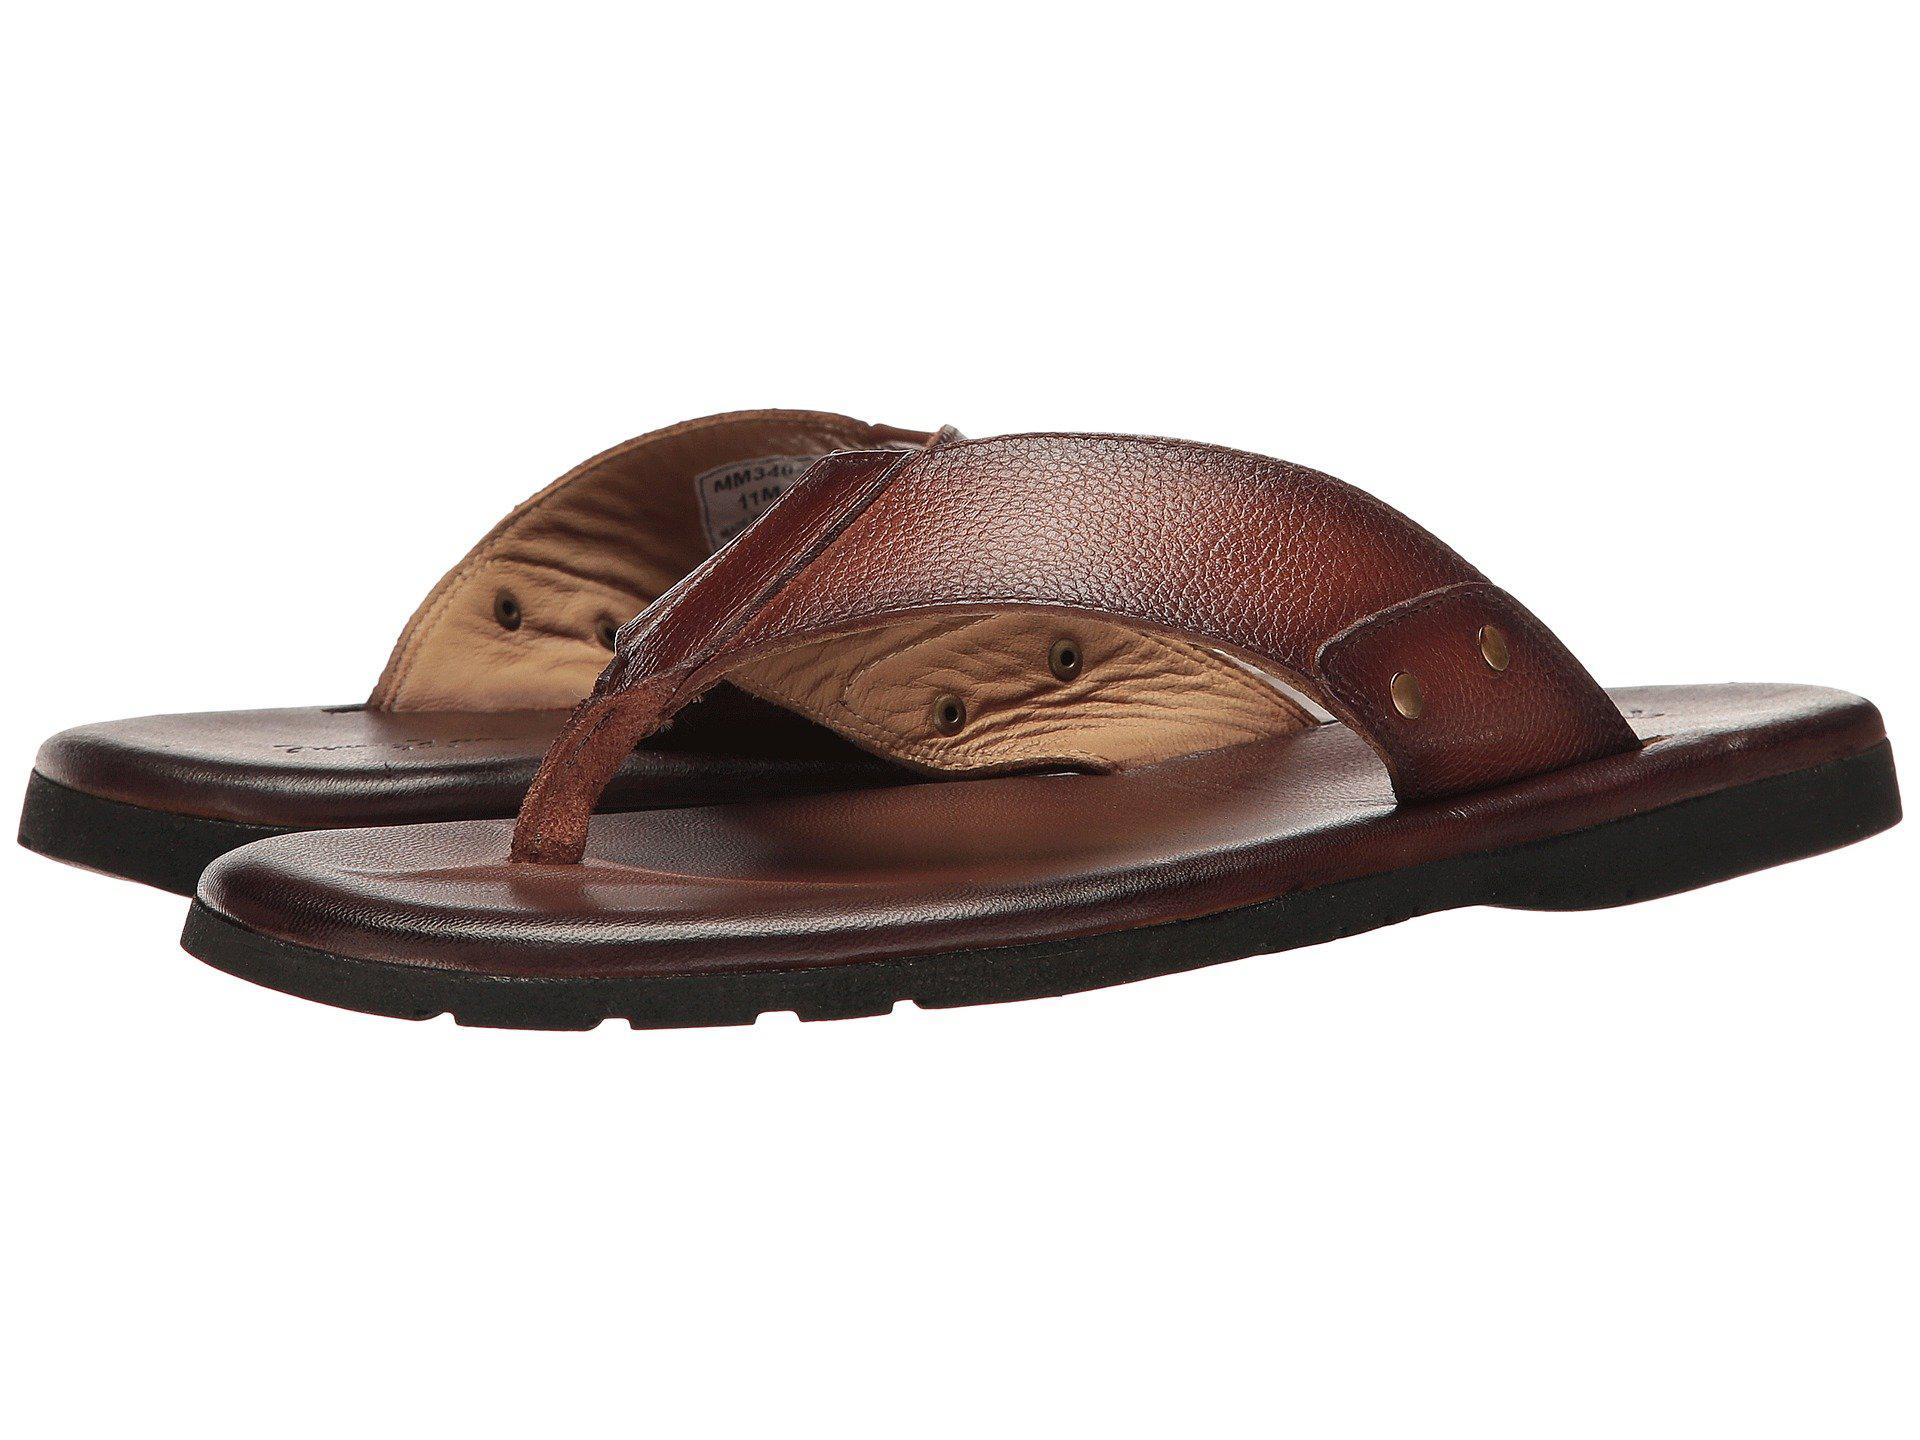 8a3faa4f05b3 Lyst - Massimo Matteo Rio (whisky) Men s Sandals in Brown for Men ...